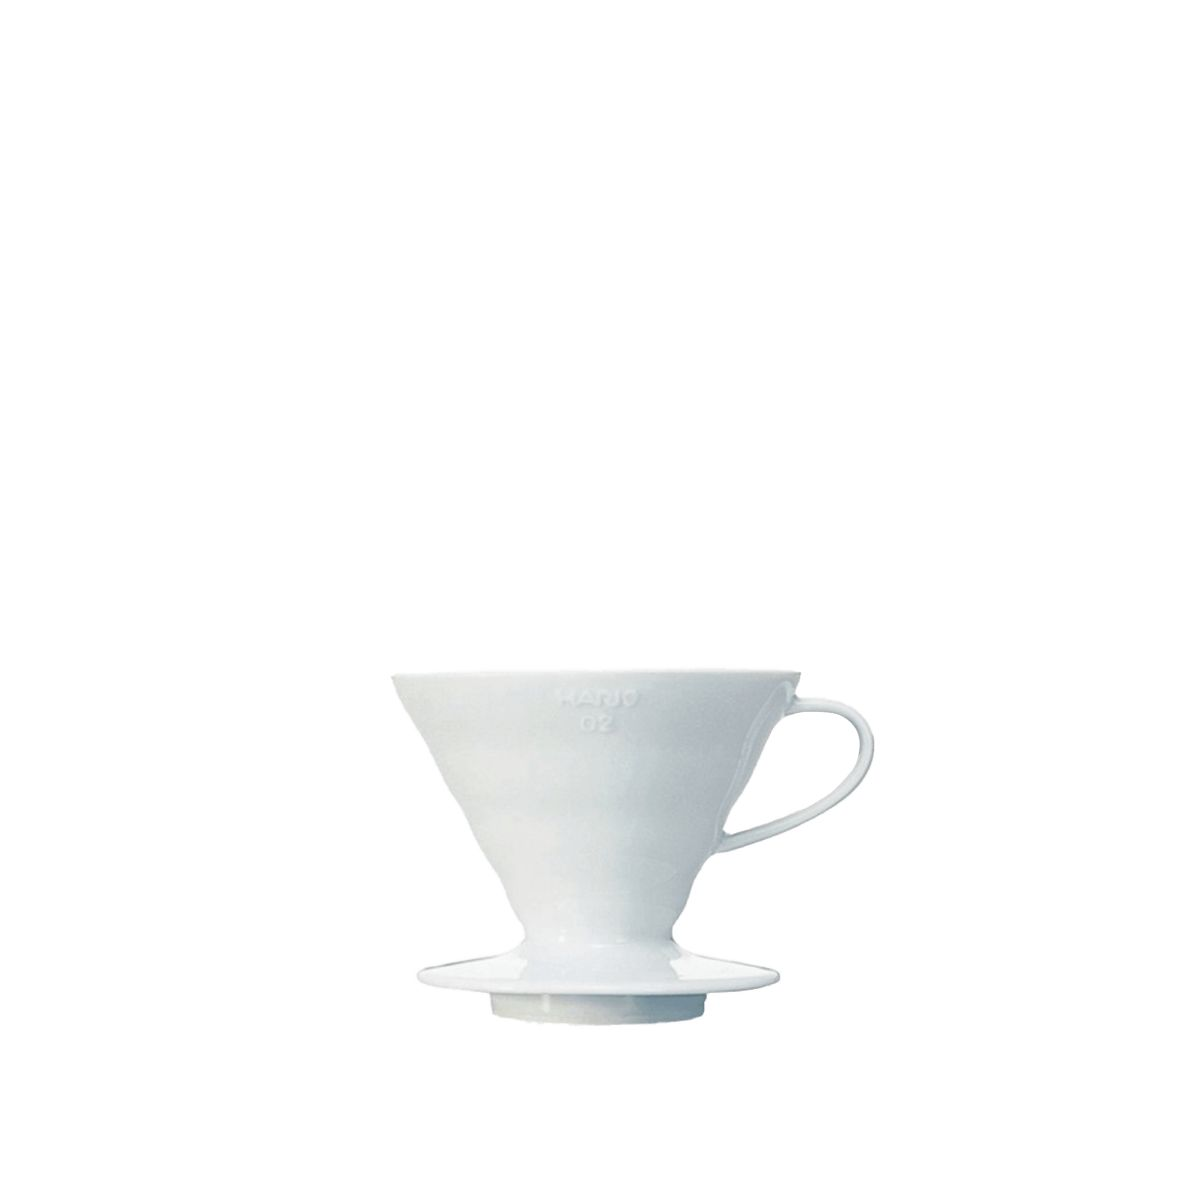 V60 Porcelain Dripper Hario [3/4 cups] - White